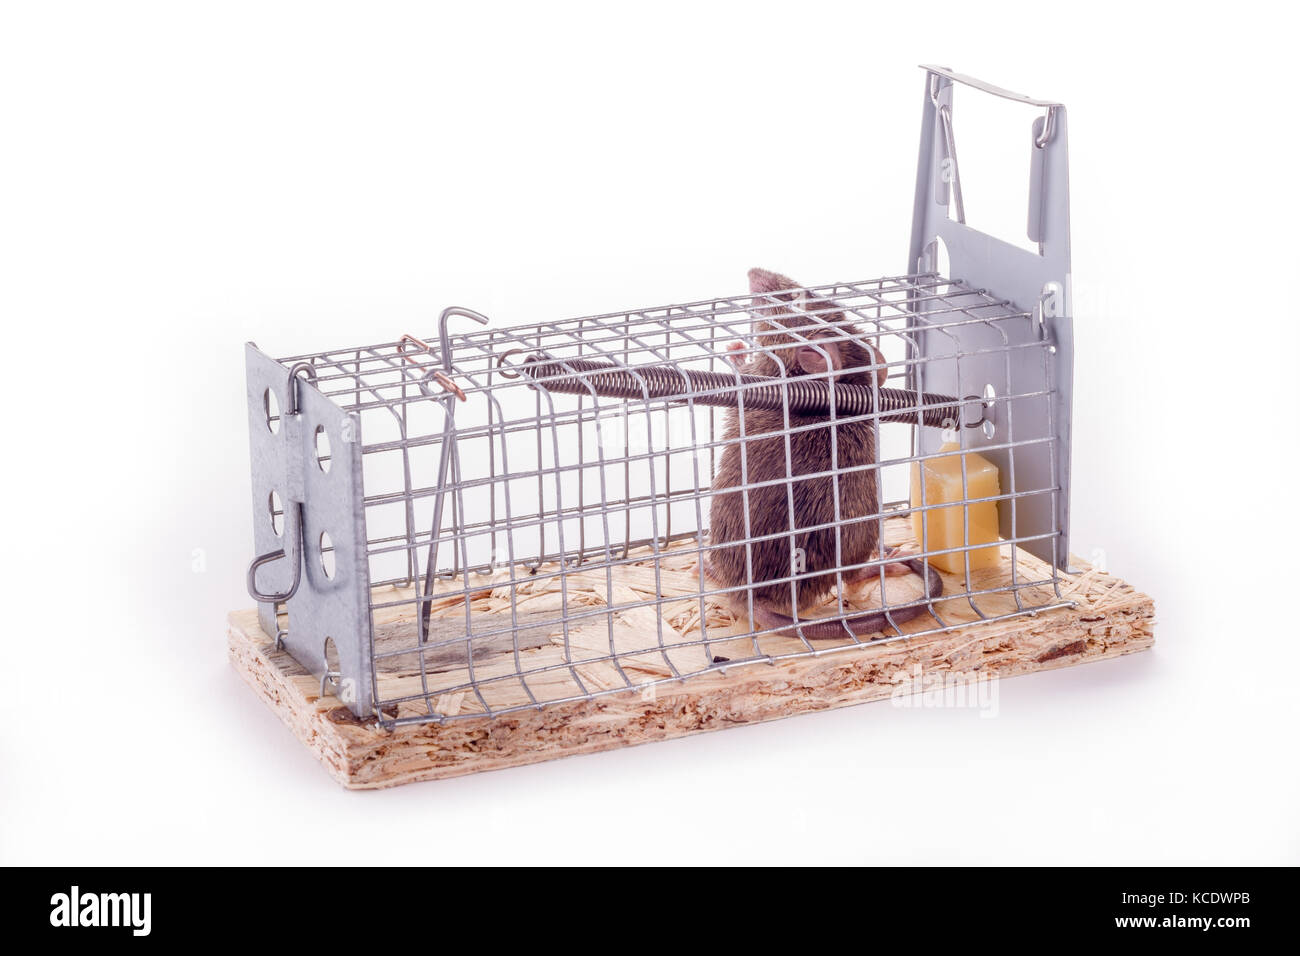 Maus In Der Küche Wie Fangen 39live Trap 39 Stockfotos And 39live Trap 39 Bilder Alamy